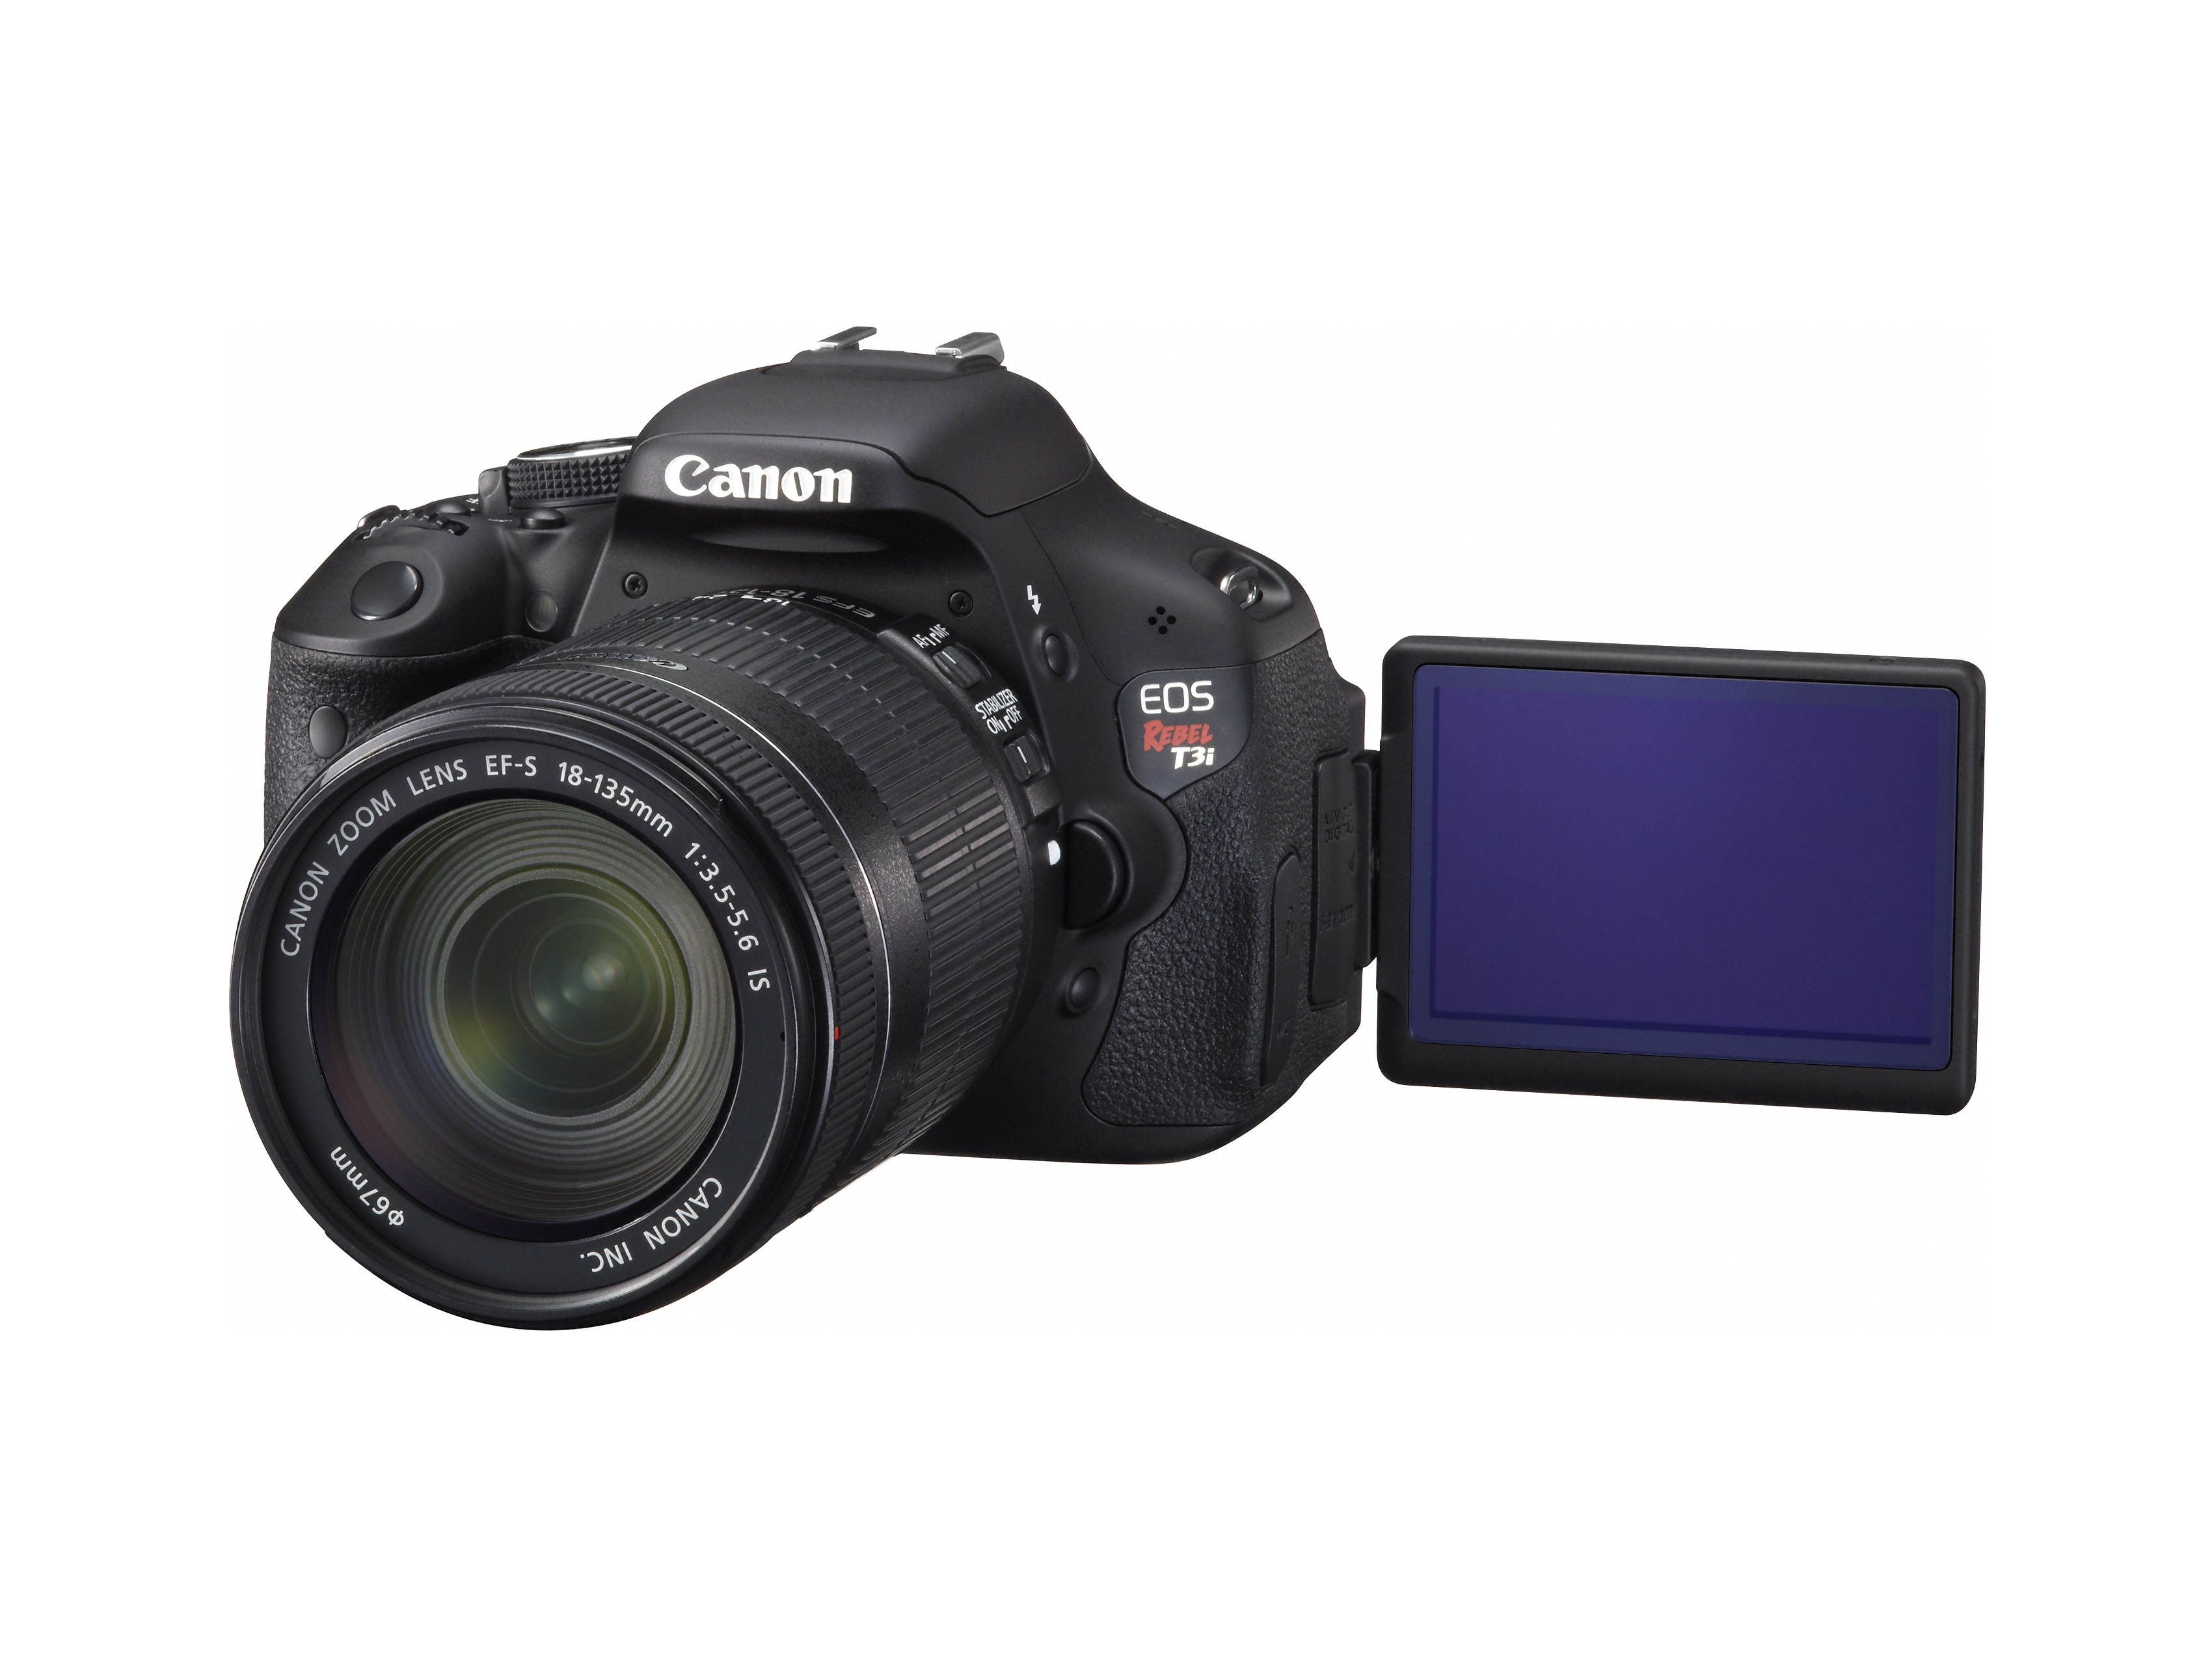 canon eos rebel t3i video review